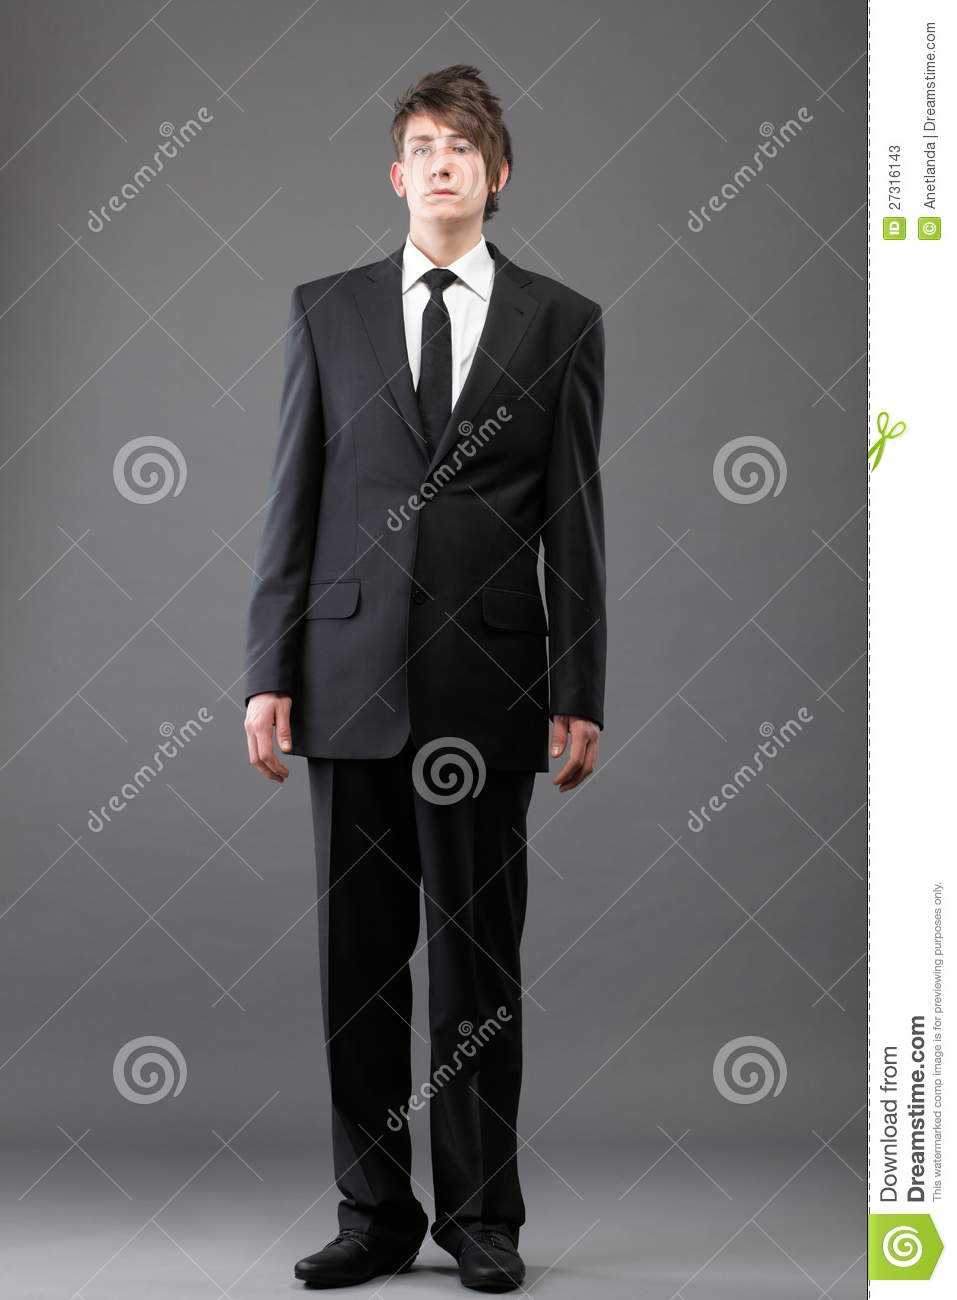 Young Businessman Black Suit Casual Tie On Gray Stock Photos ...